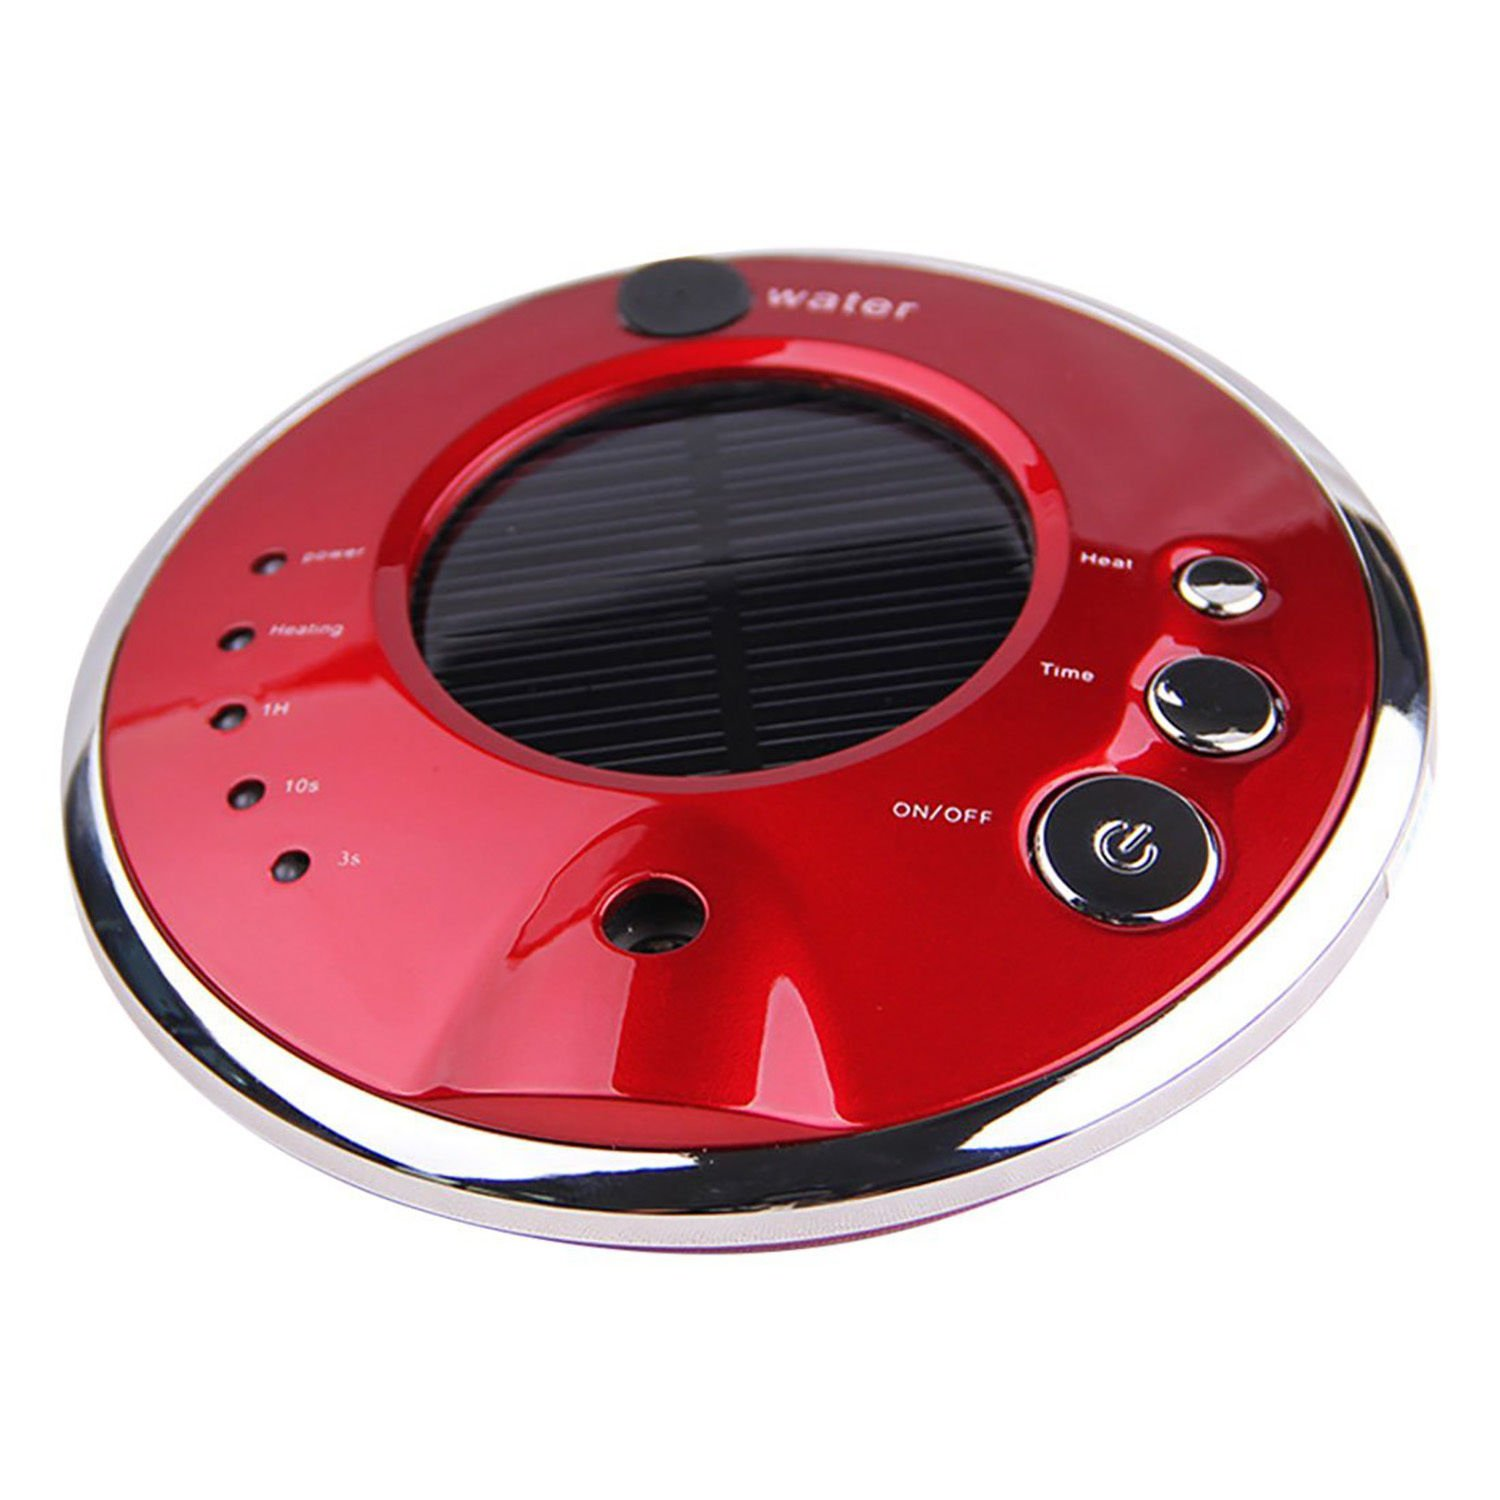 KinStore Ultrasonic Anion Mini Portable Solar Car Air Purifier and Air Cleaner for Home Office Car and Travel (Red)